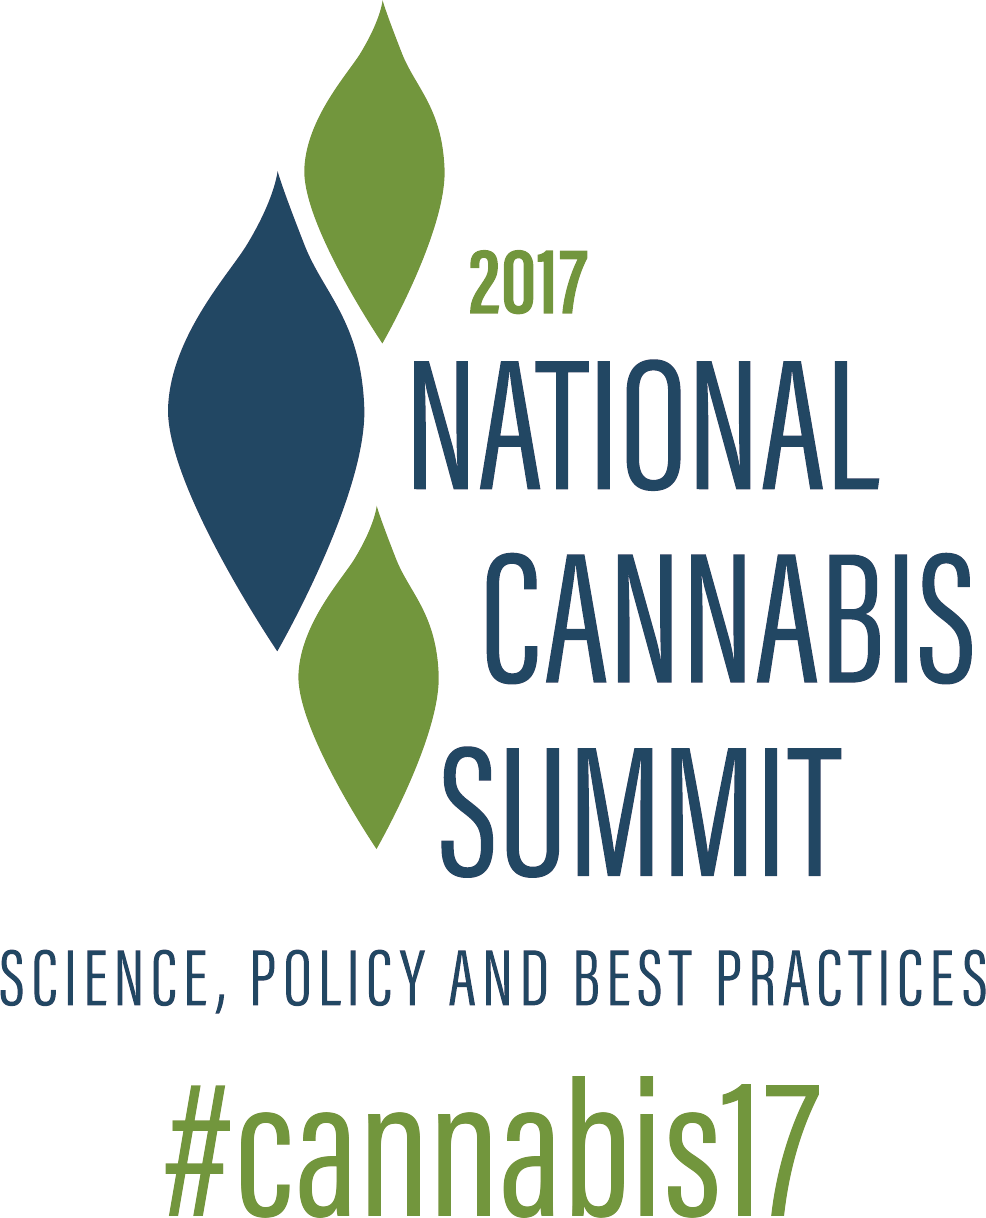 National Cannabis Summit